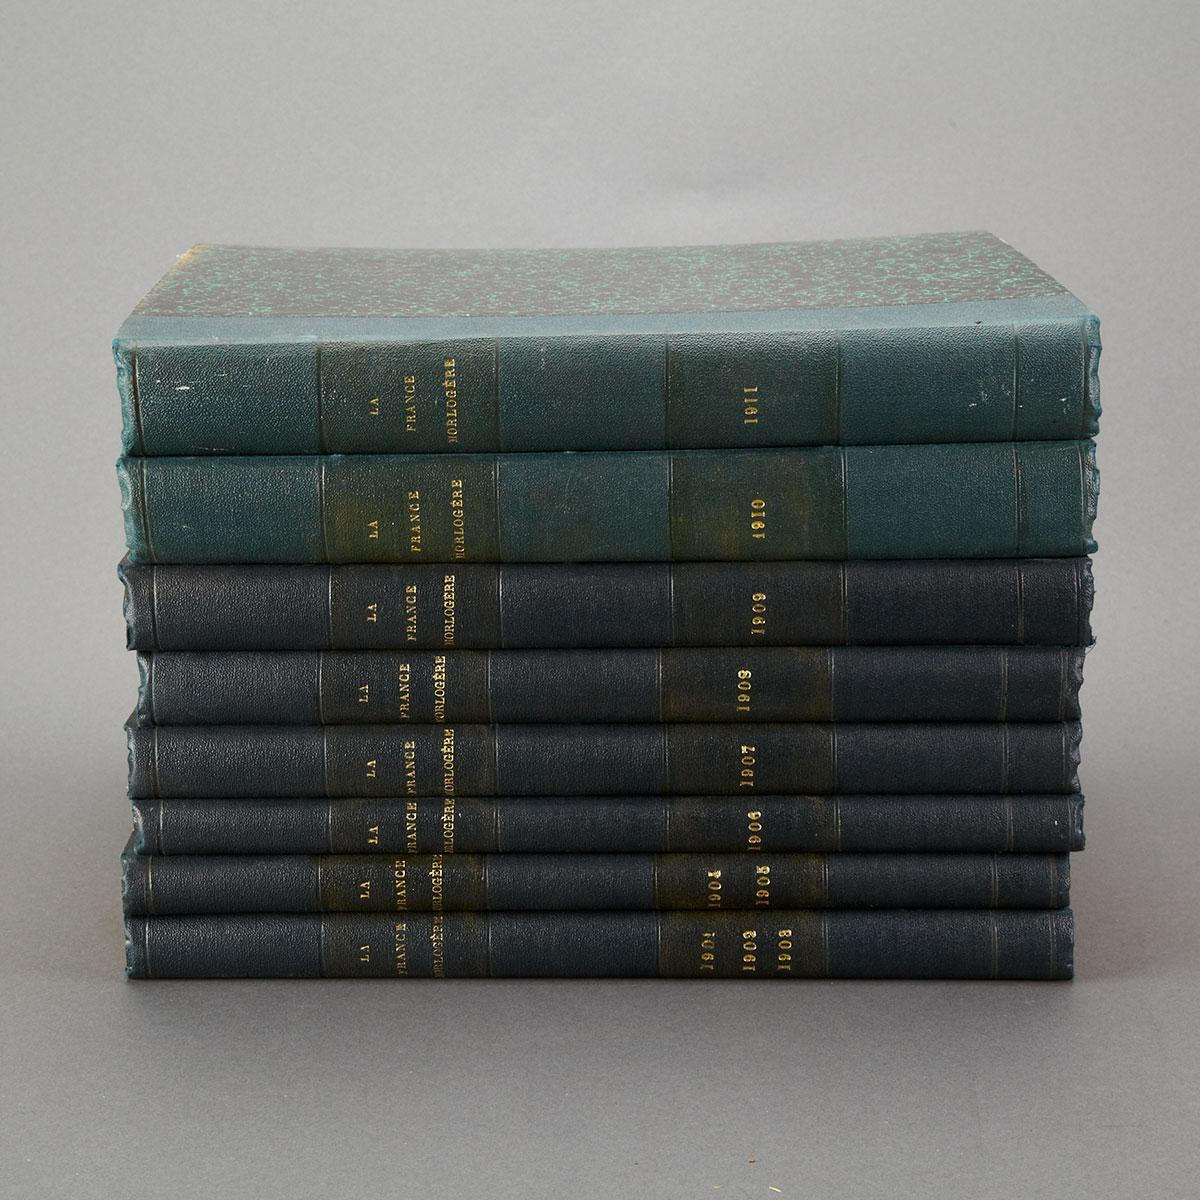 La France Horlogère, 1901-1911 Inclusive, Bound in Eight Volumes